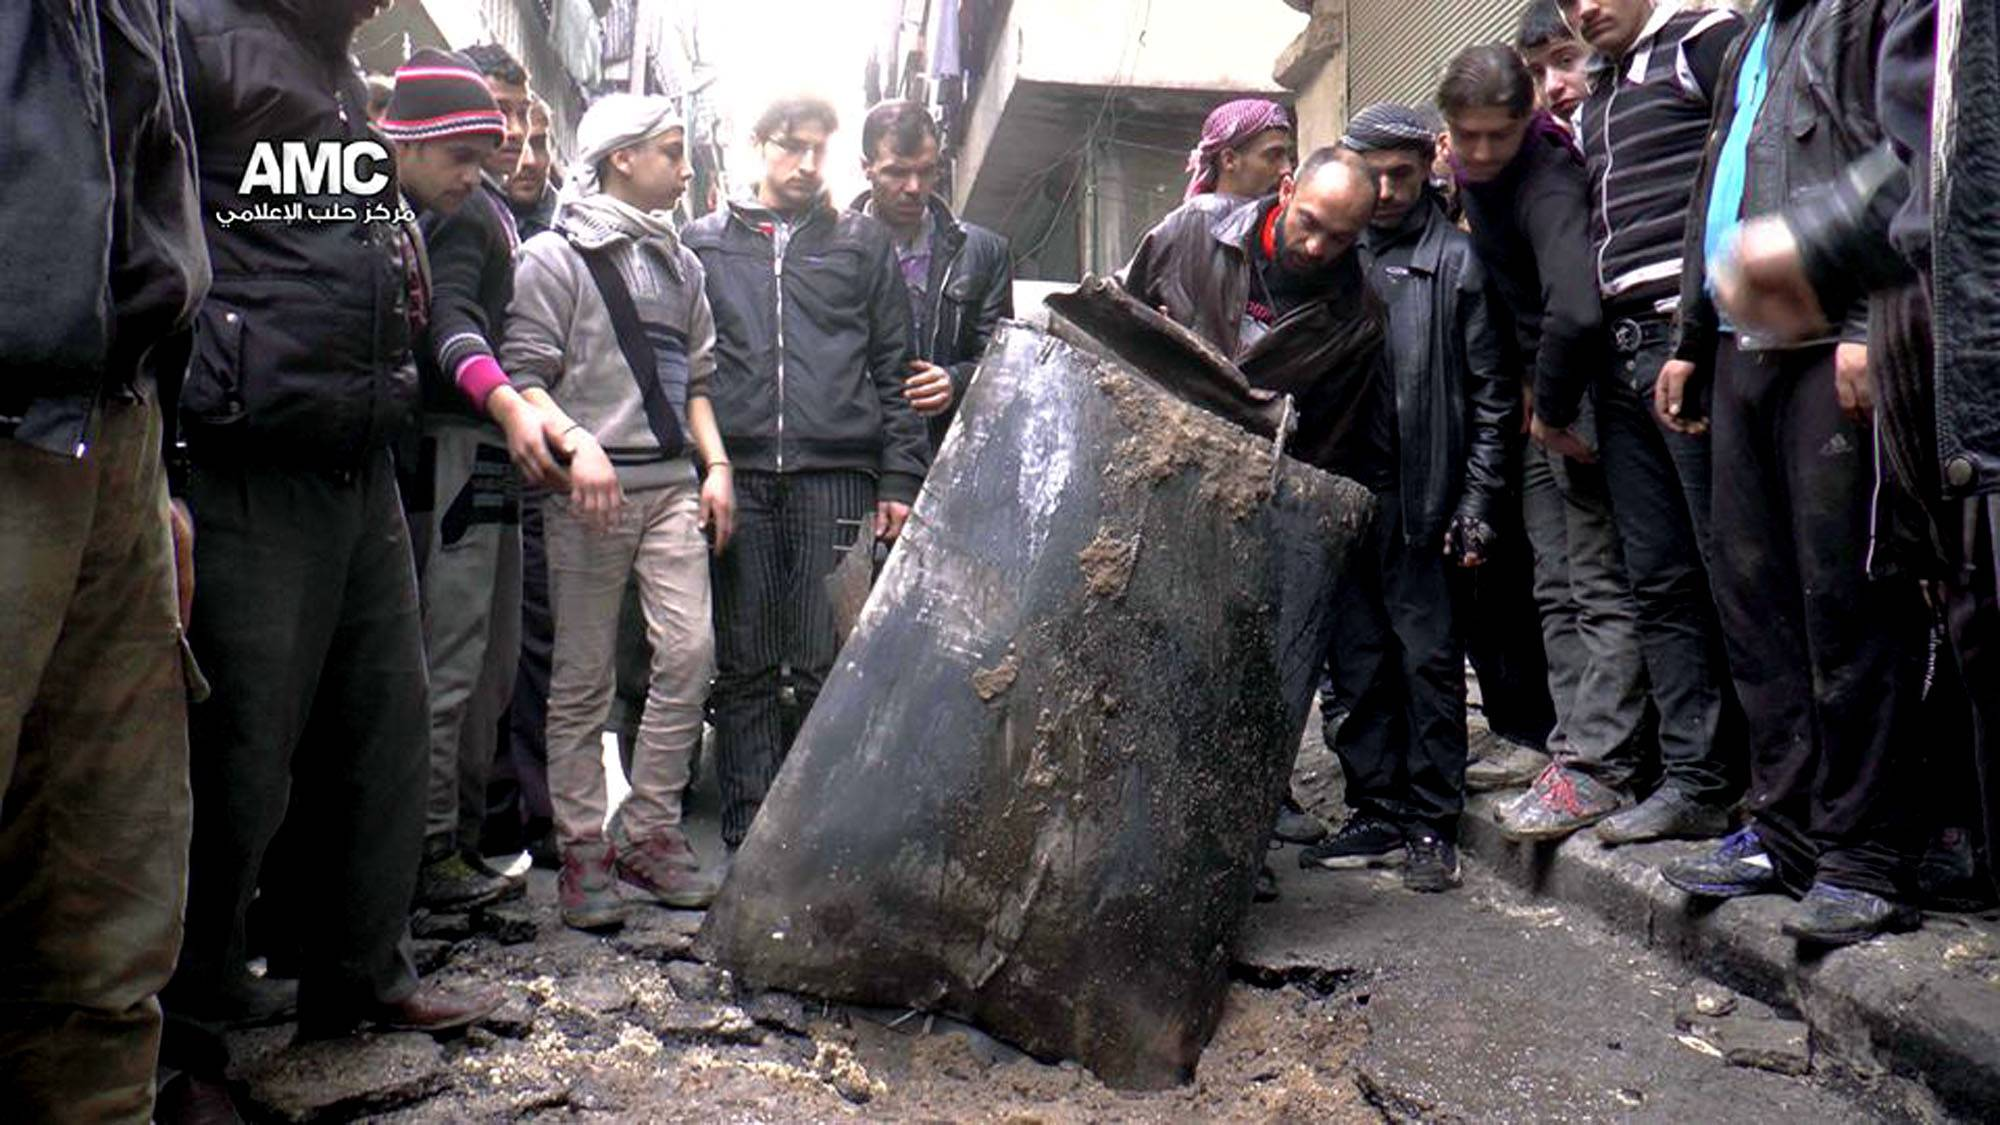 These barrel bombs were discovered in Syria. The use of barrel bombs has spread this year from Syria to Iraq, raising concerns that desperate governments in a number of unstable nations from Europe to Africa to the Middle East will turn to weapons that the international community has condemned as a violation of human rights laws.